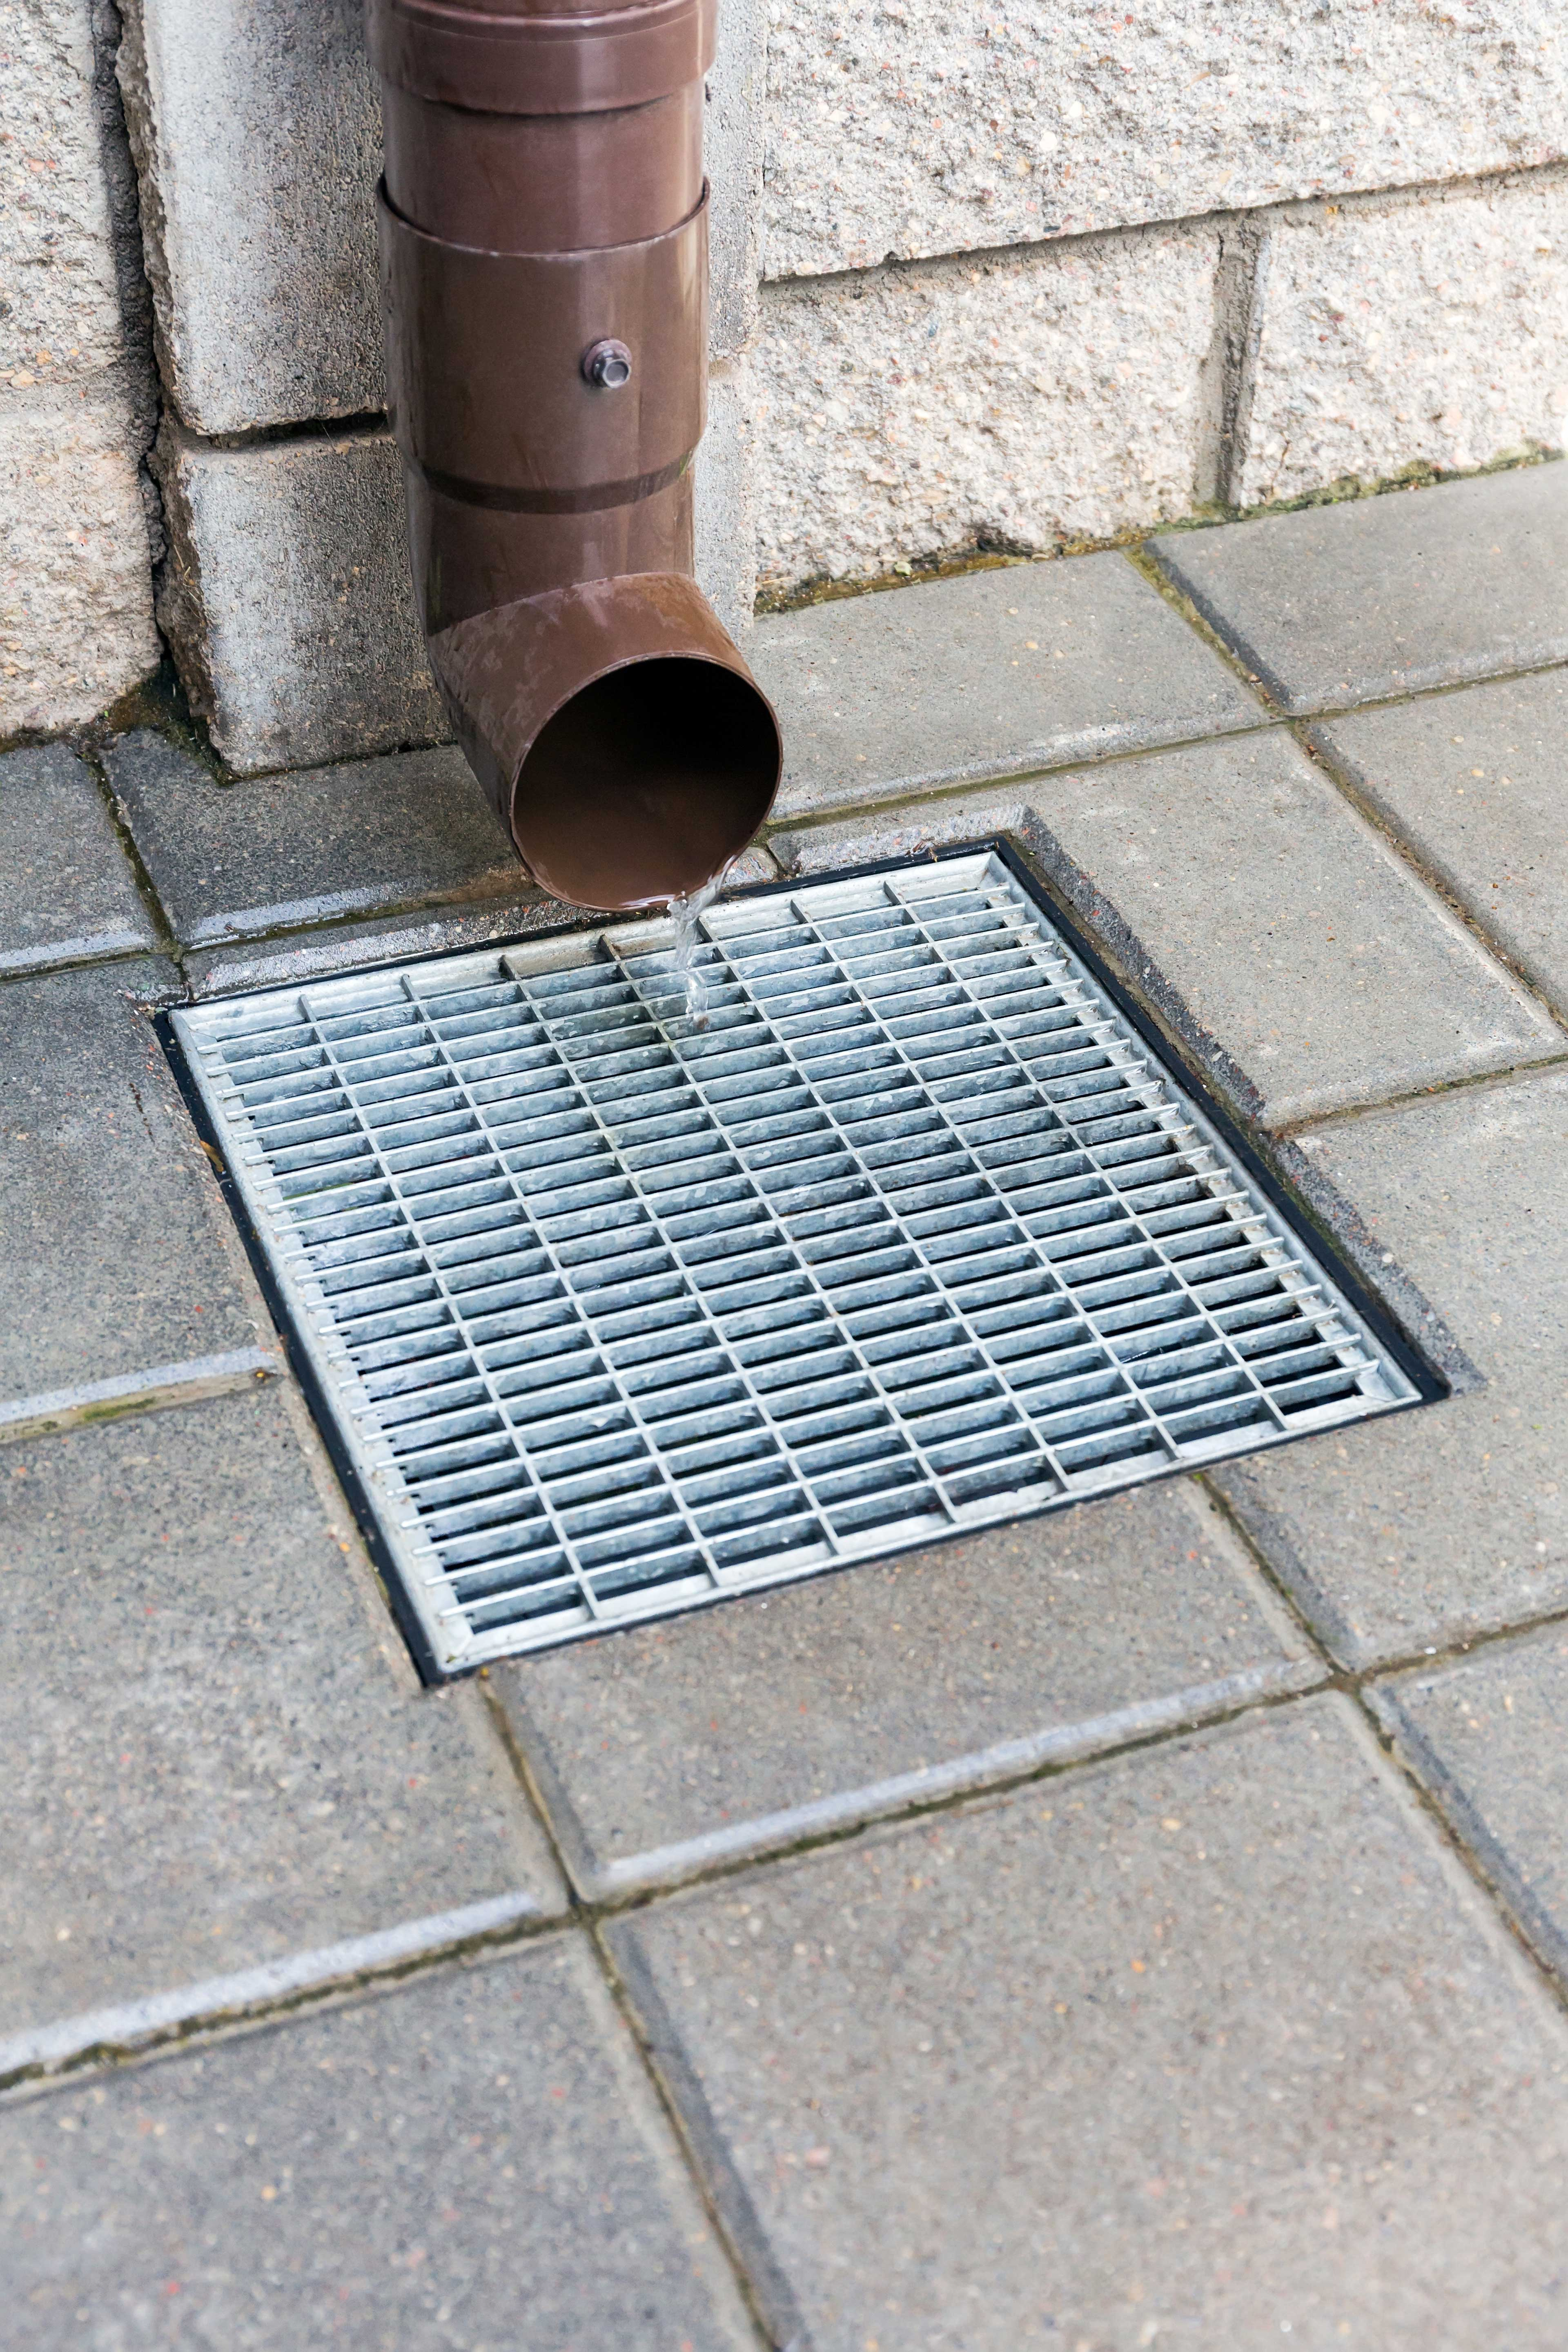 Area drain cleaning and storm drain cleaning naples fl for Downspout drain